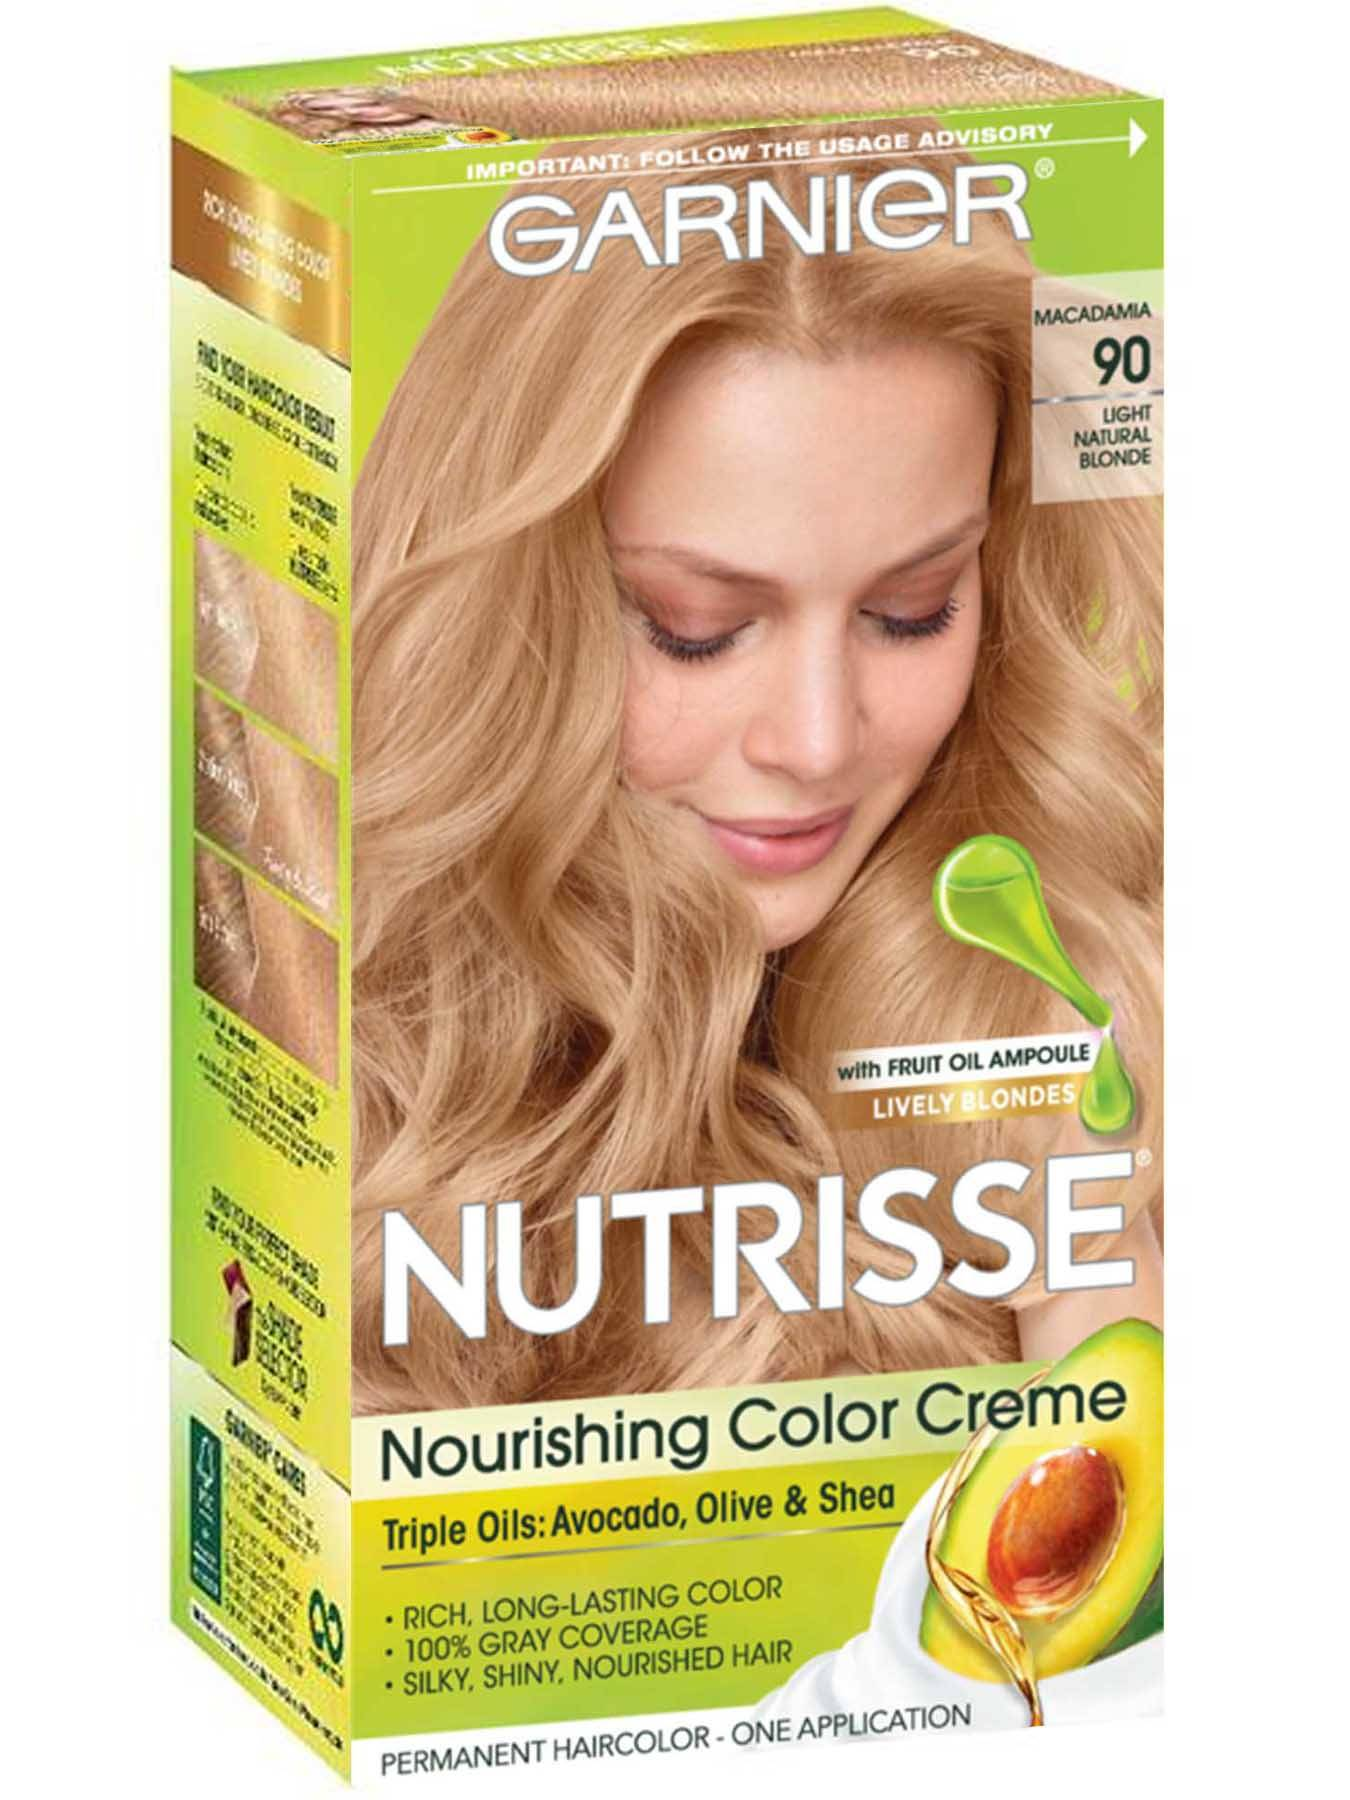 Nutrisse Nourishing Color Creme - Light Natural Blonde 90 - Garnier